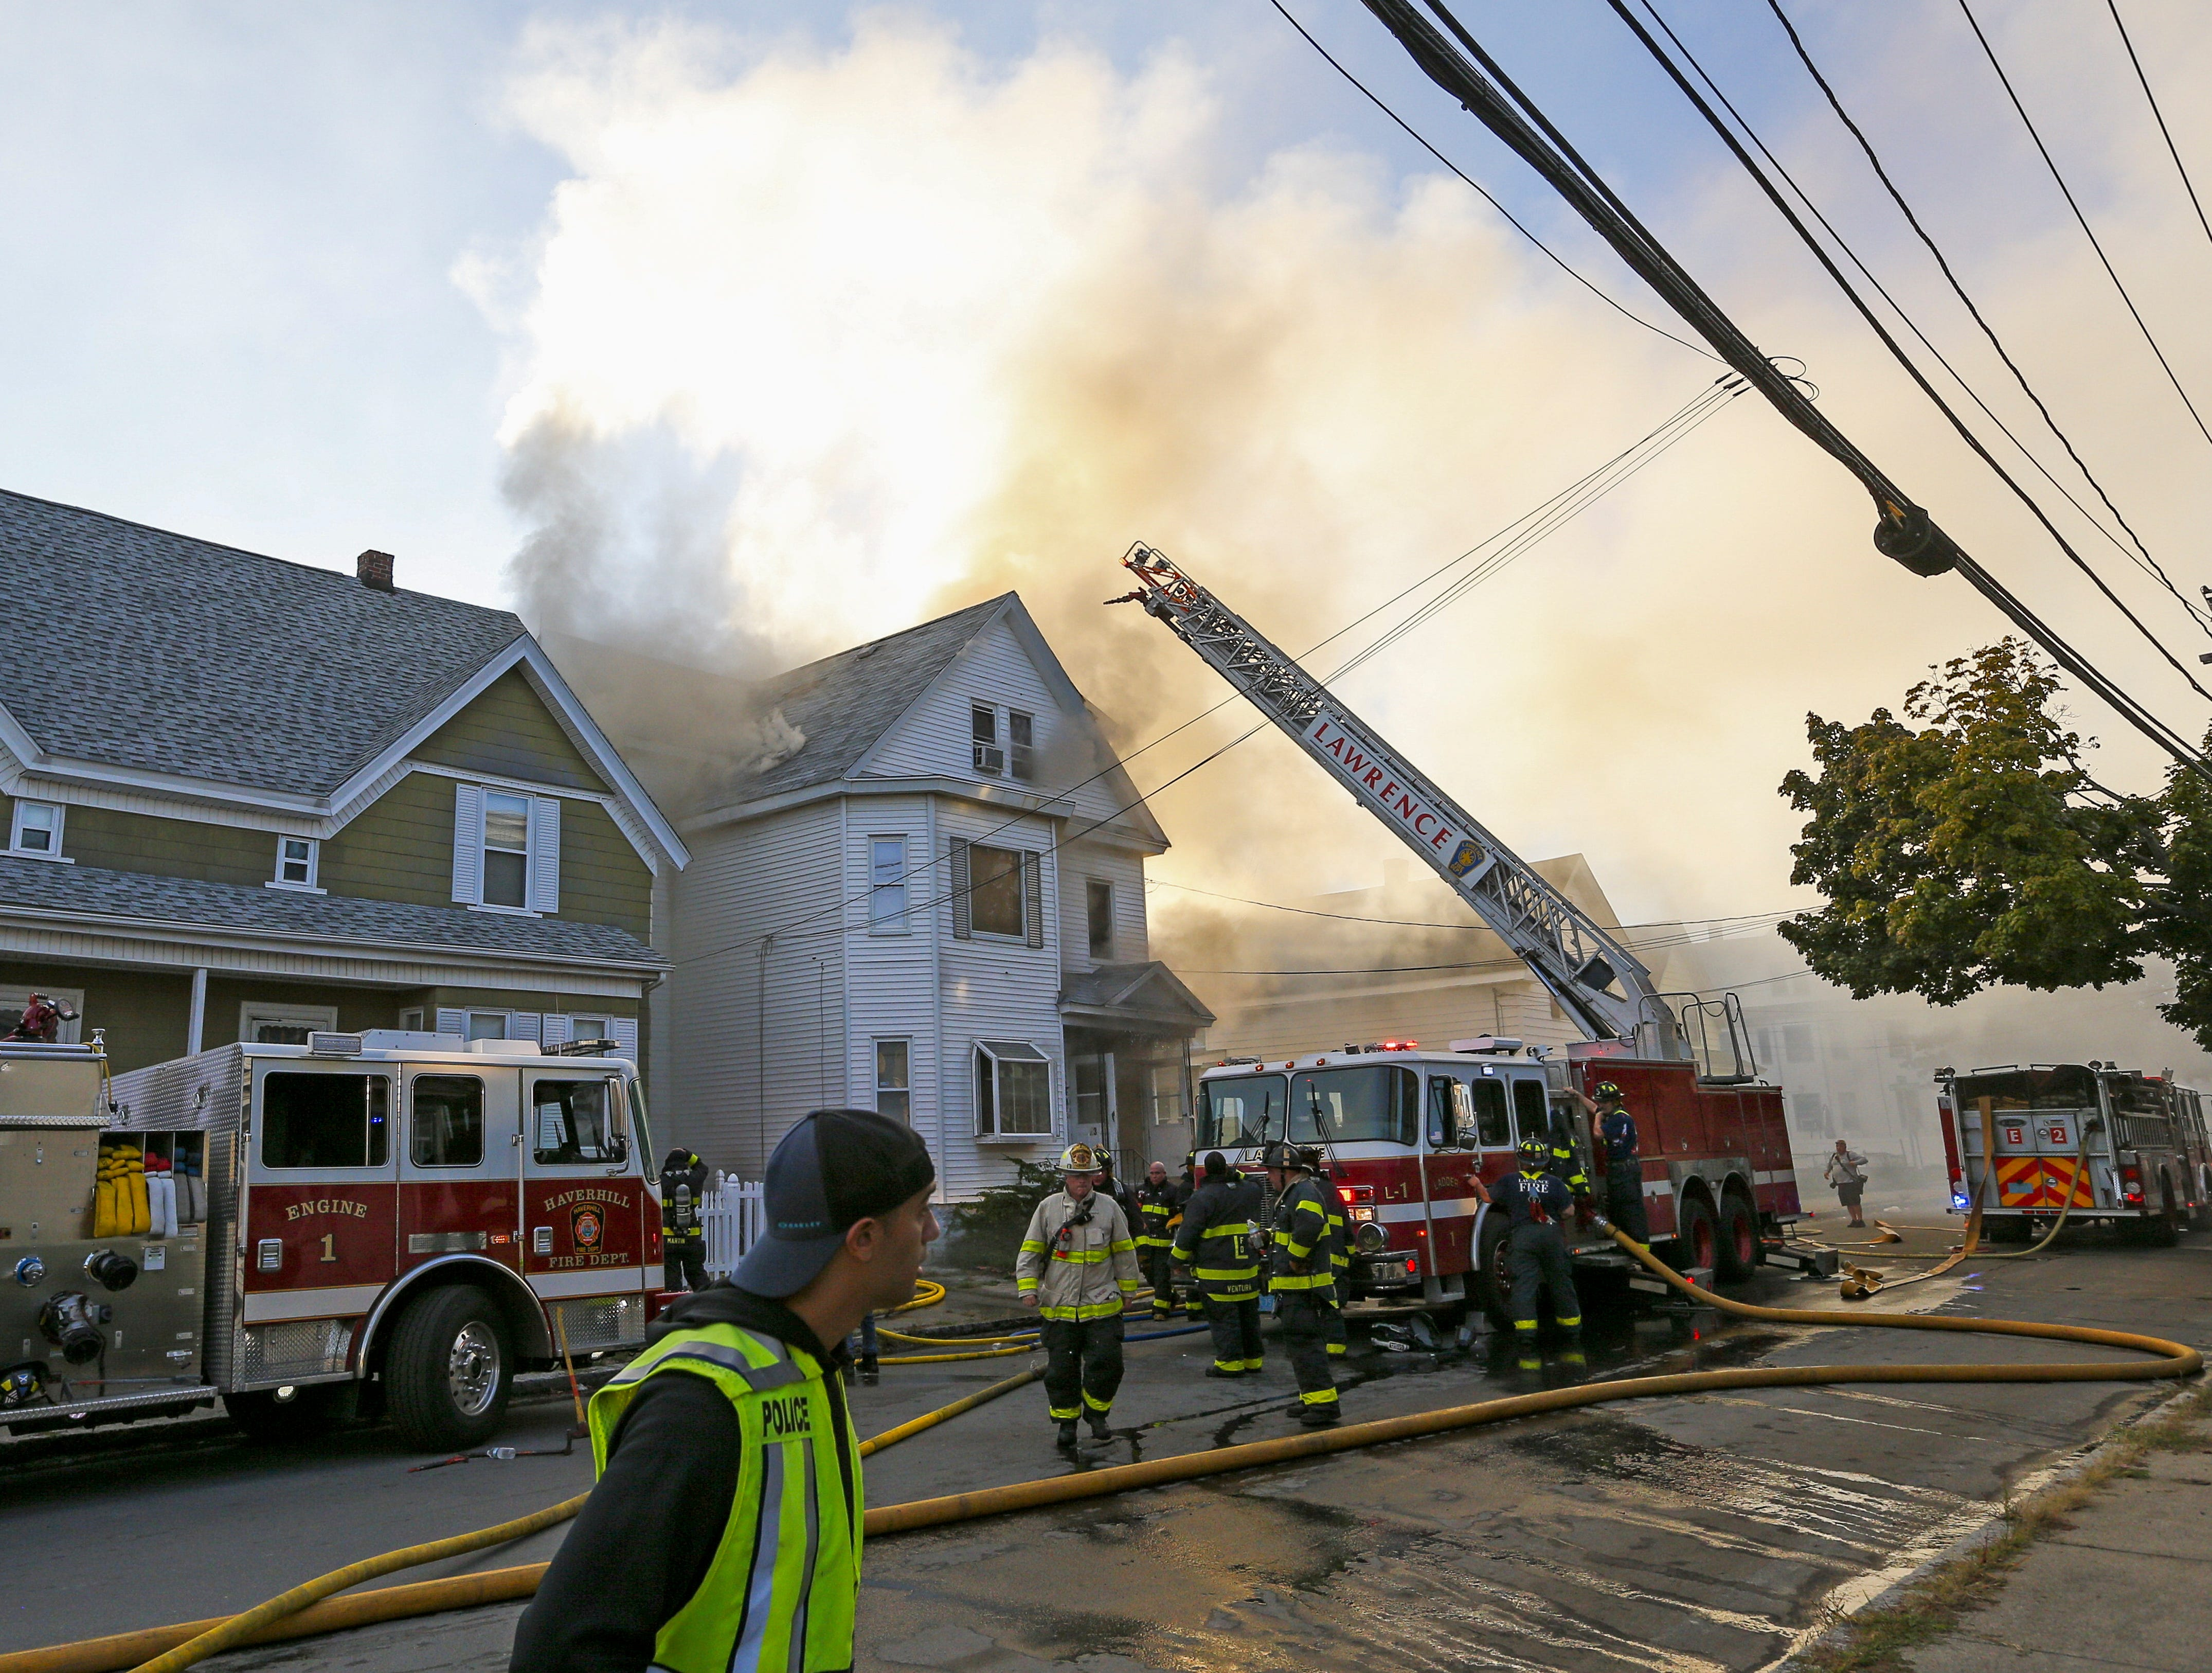 epa07018414 Firefighters battle a fire in a house in Lawrence, Massachusetts, USA, 13 September 2018. A series of reported gas explosions in towns north of Boston Massachusetts set homes ablaze and forced mandatory evacuation for residents.  EPA-EFE/CJ GUNTHER